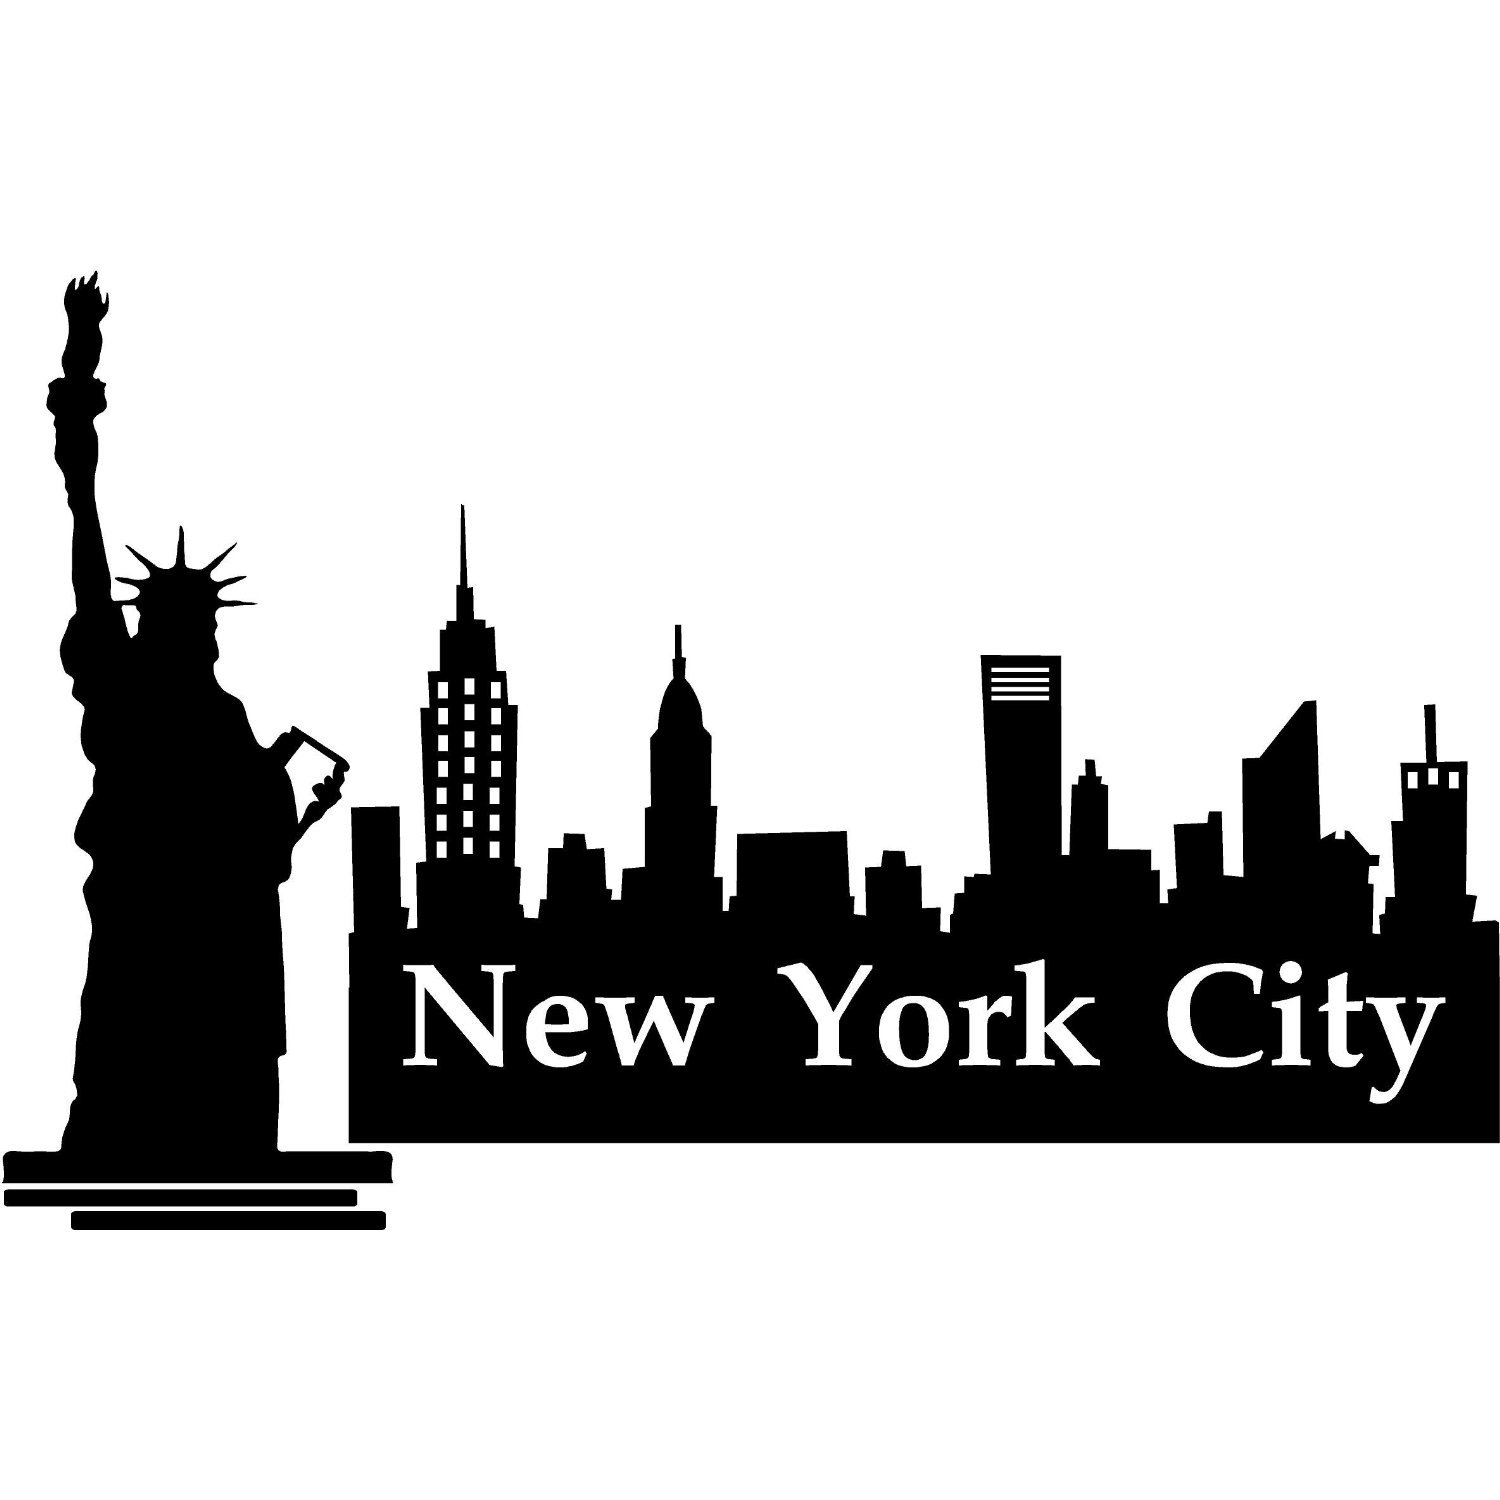 new york city clipart skyline - photo #22